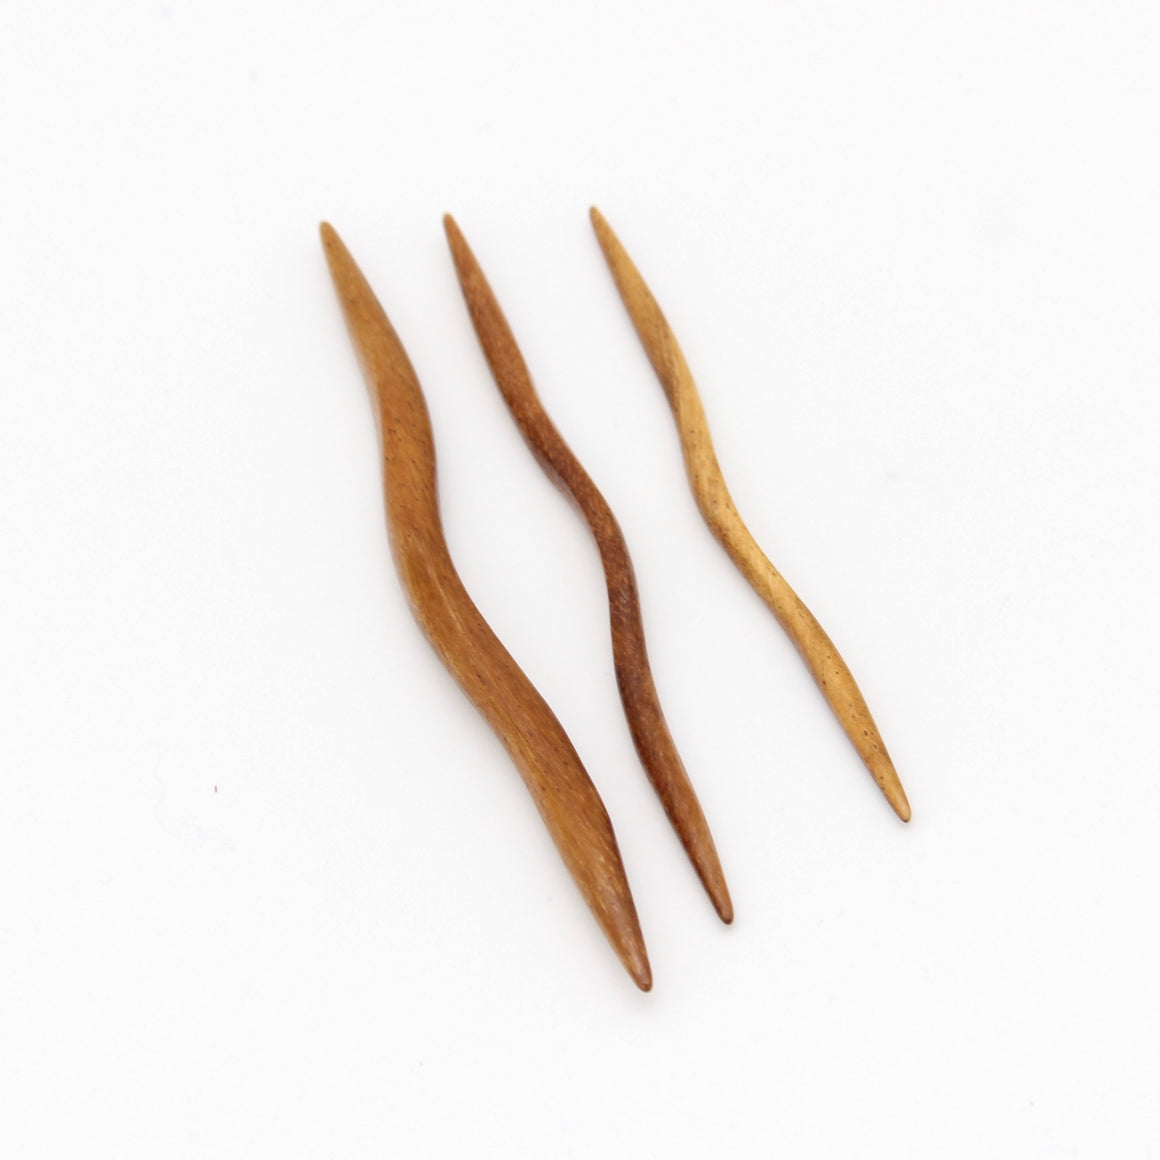 Subabul Wood Cable Needles